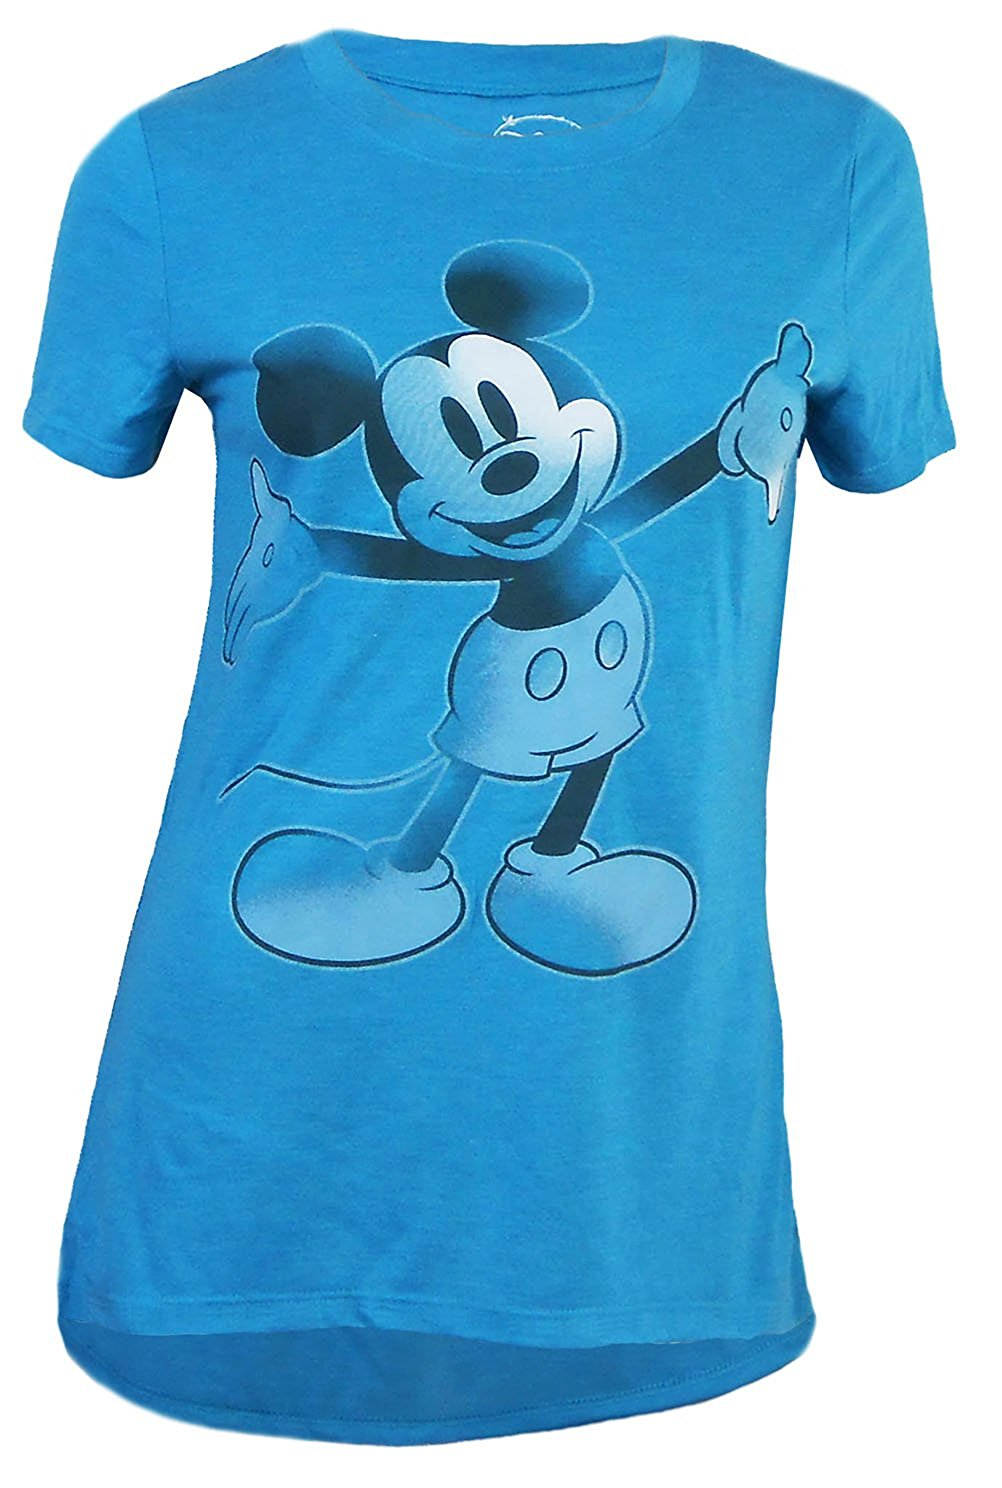 Disney Touch O Mickey Mouse Tee Fashion T Shirt Junior Girls Top - SHOPME.COM